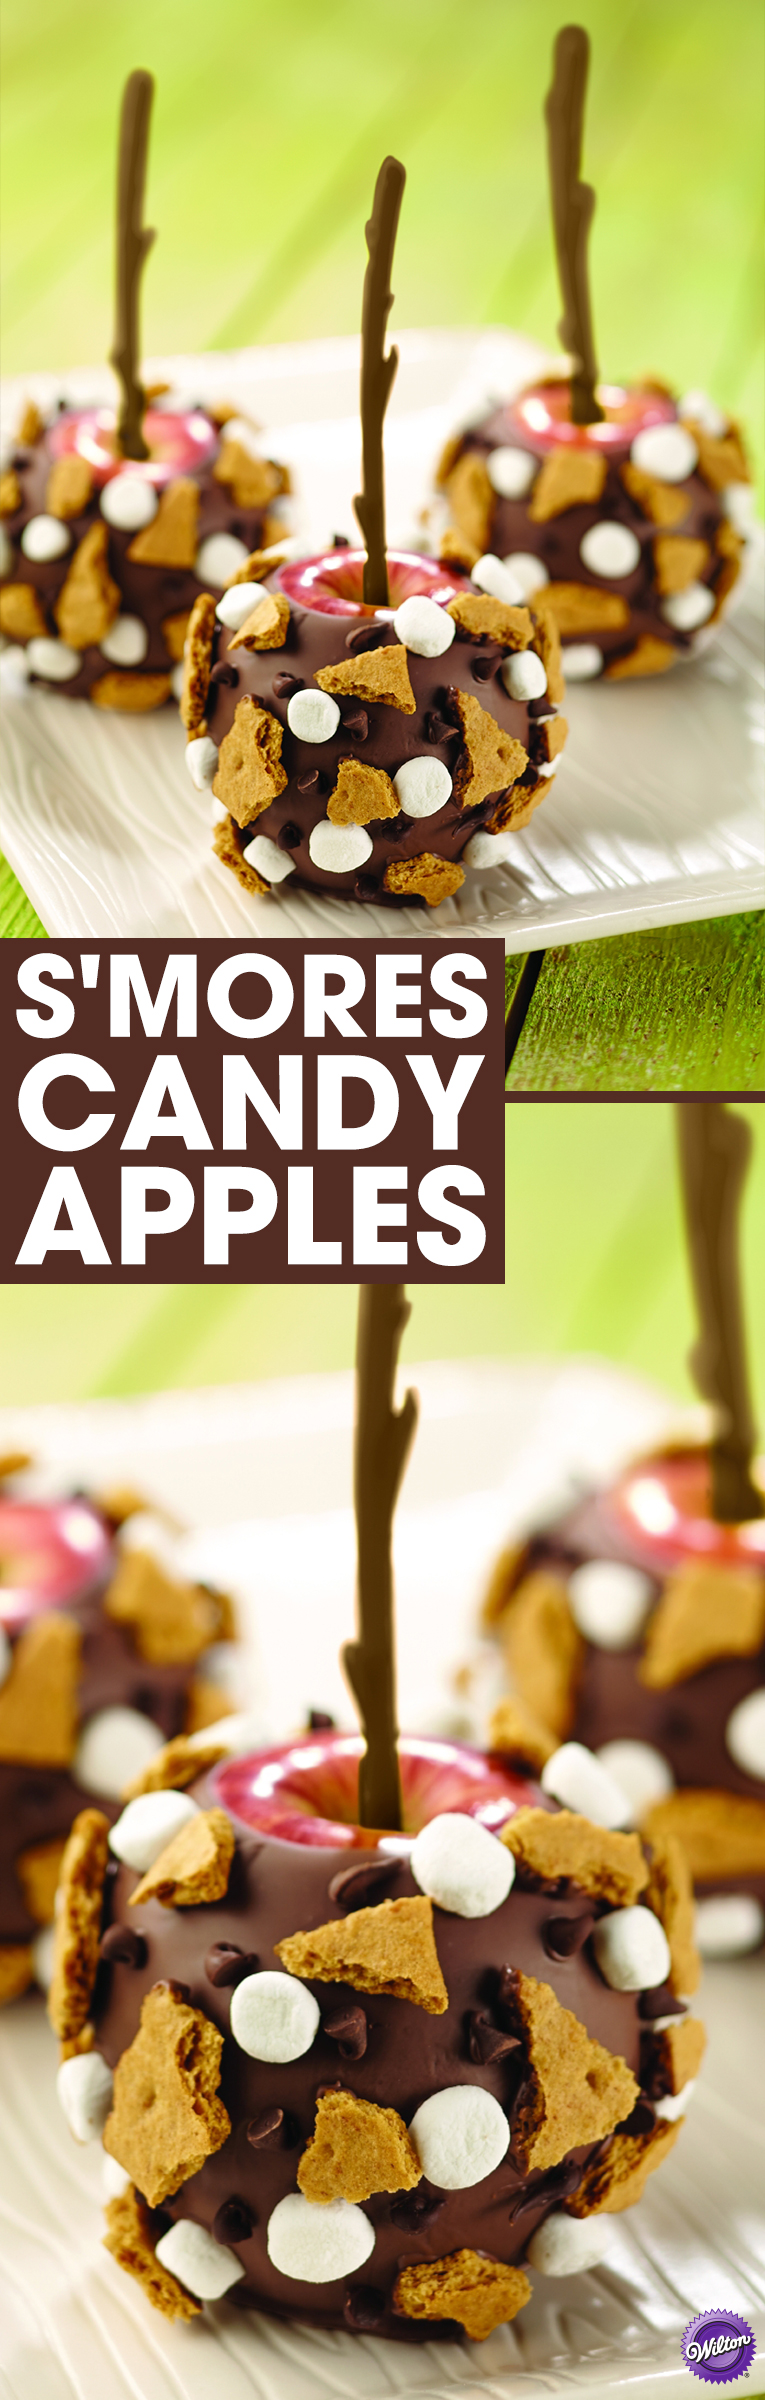 How to Make S'mores Candy Apples When a favorite